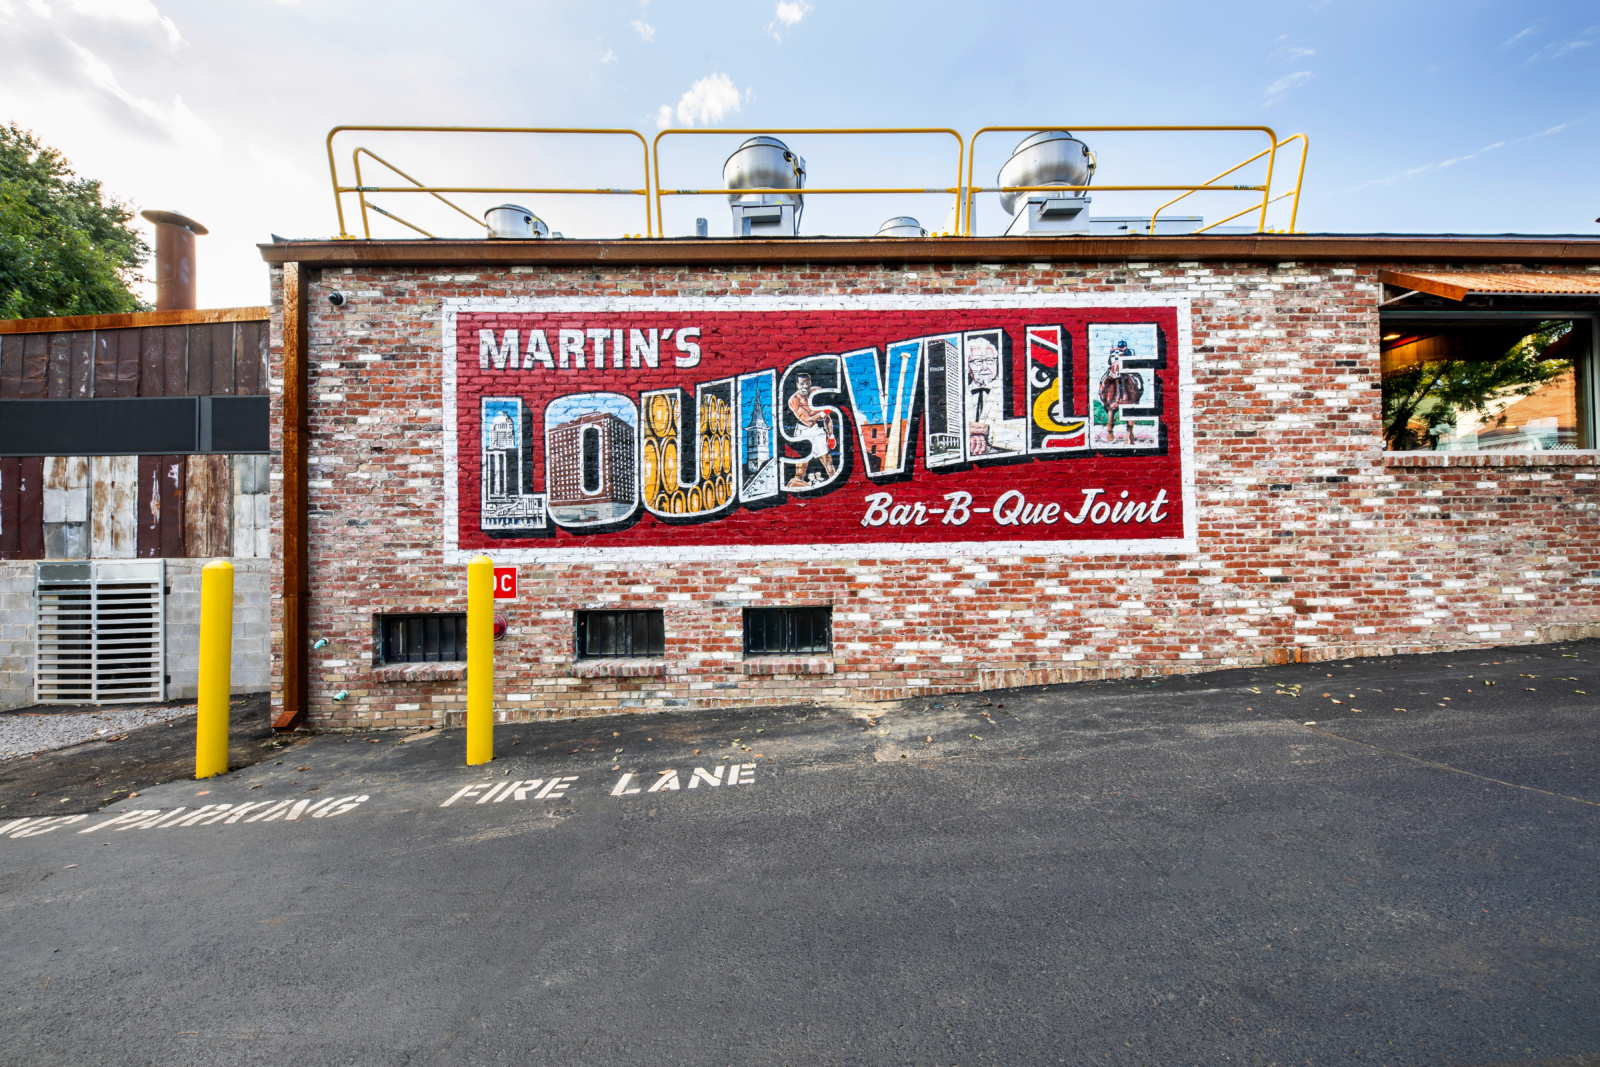 A mural on the exterior of the Martin's BBQ building.